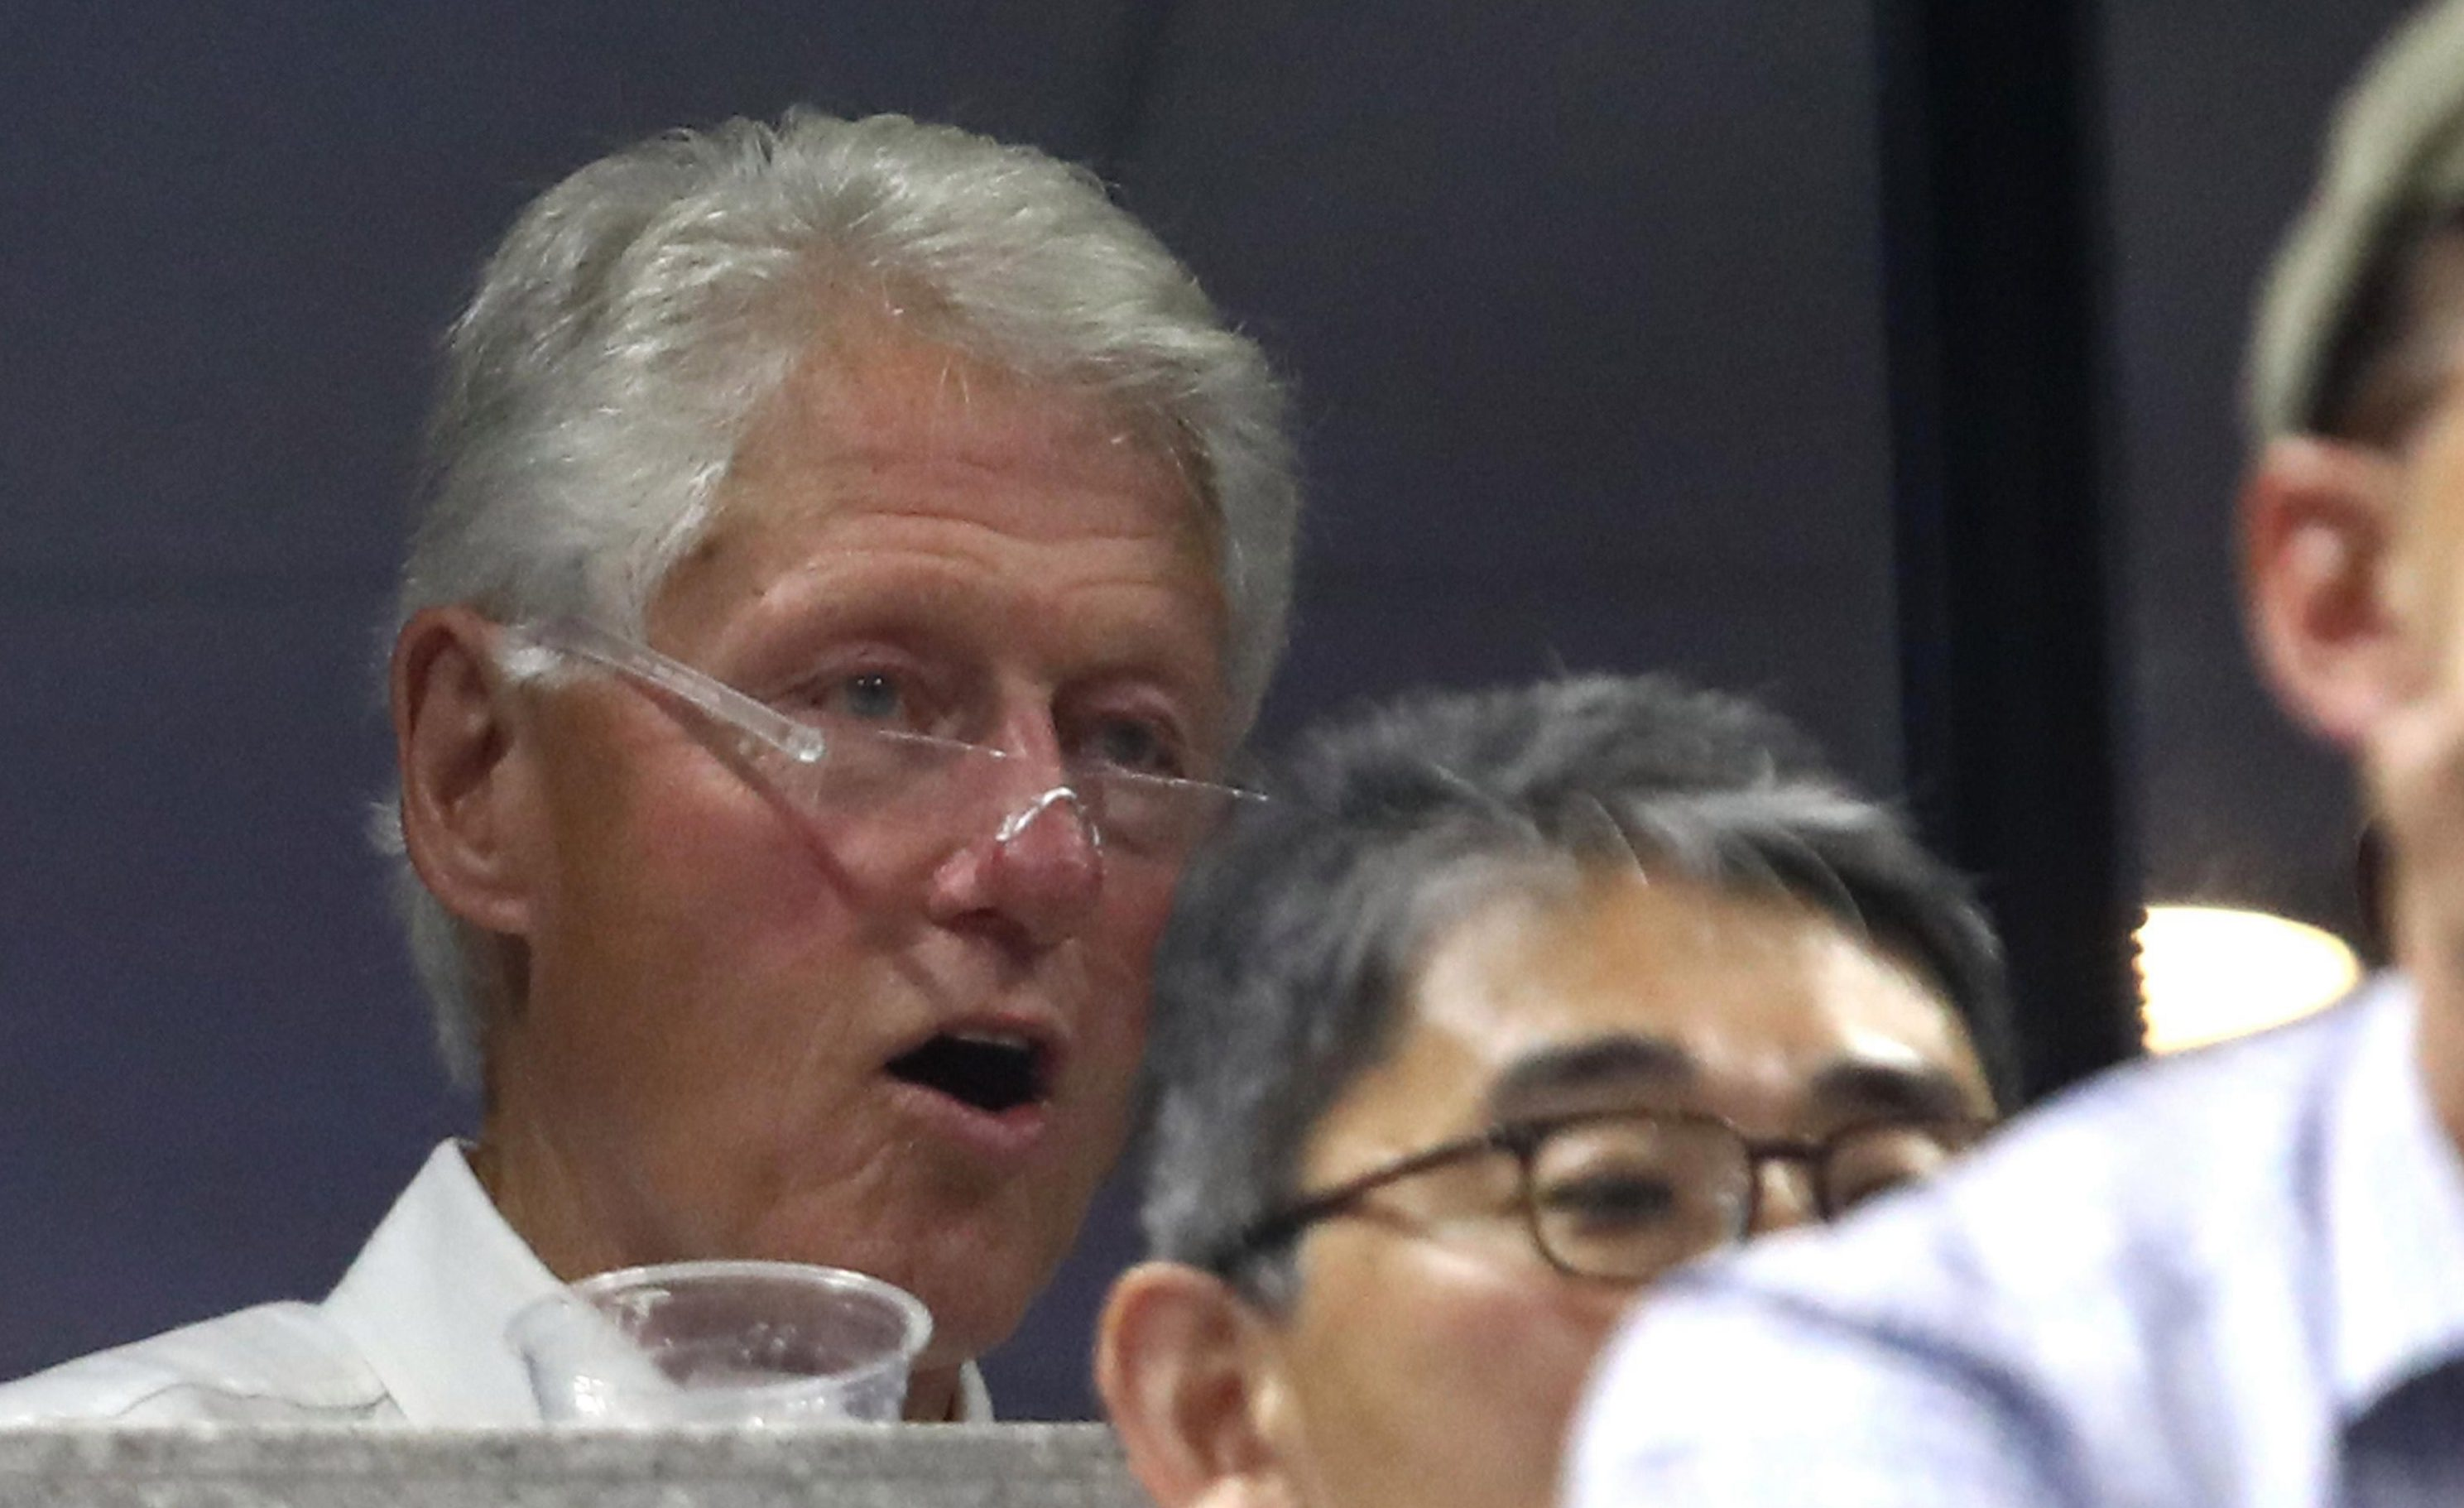 Former US president Bill Clinton was courtside for the action